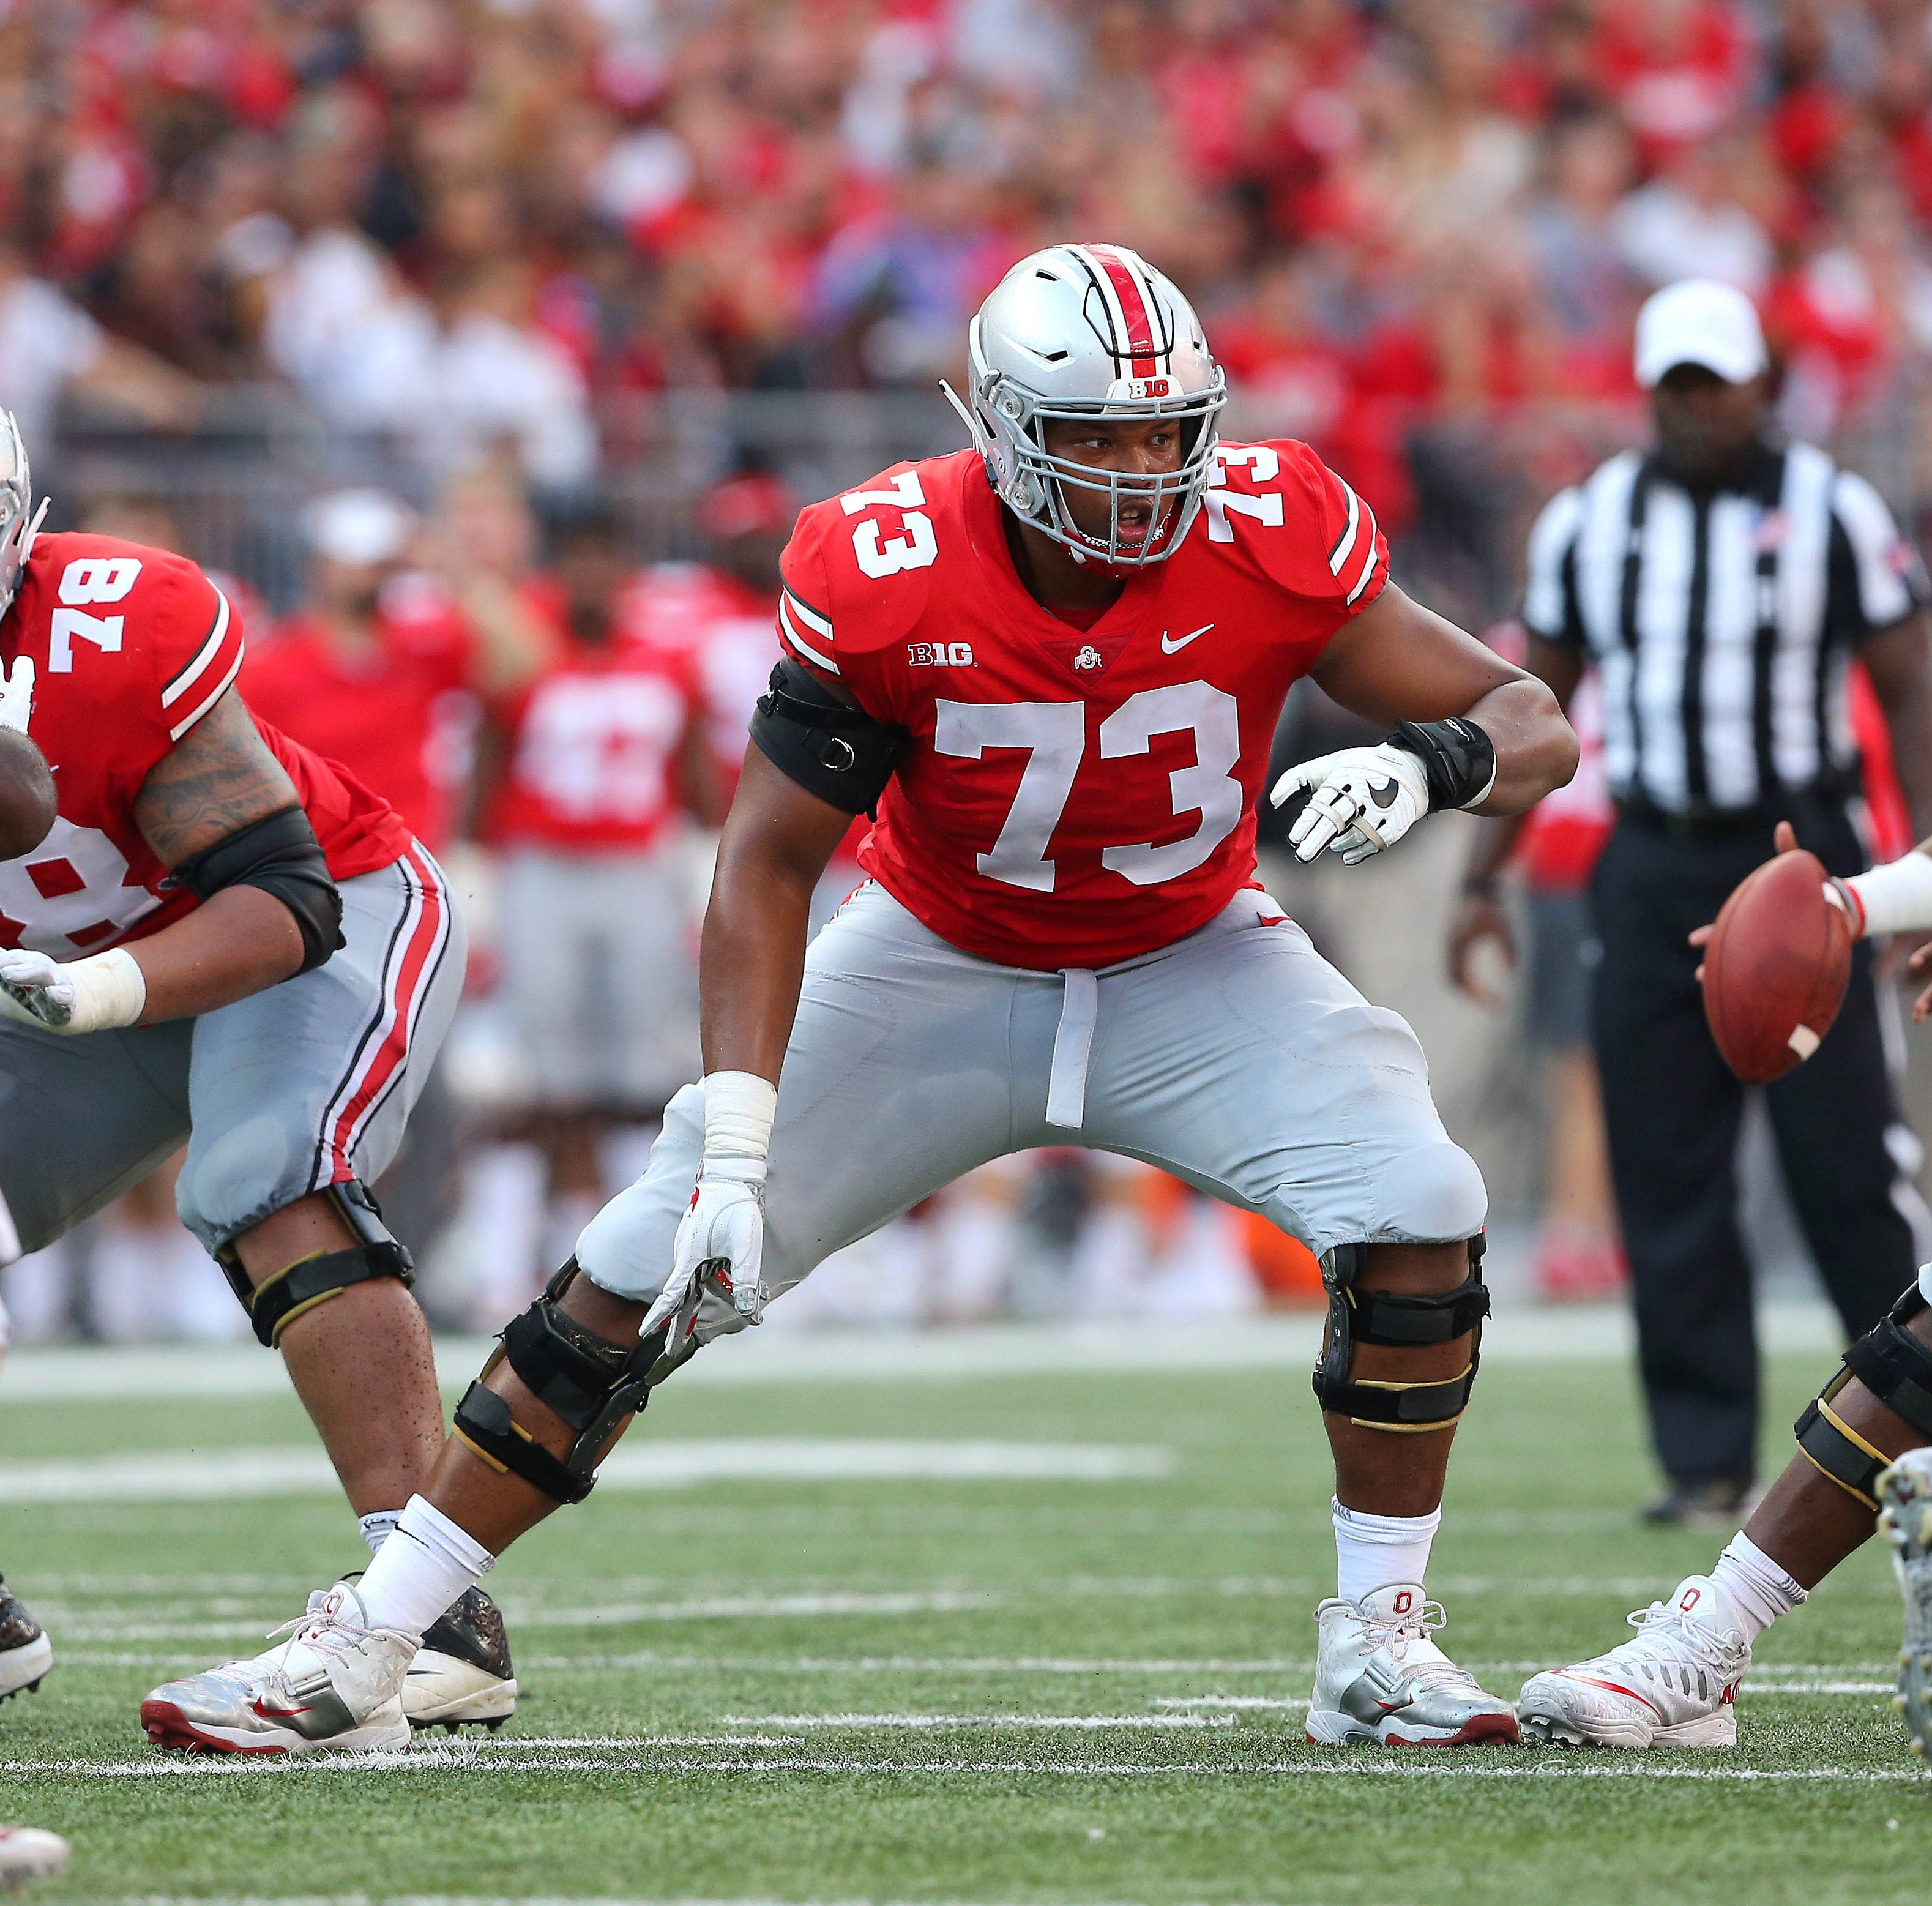 Former Plymouth, Ohio State OL Michael Jordan drafted by Cincinnati Bengals in 4th round